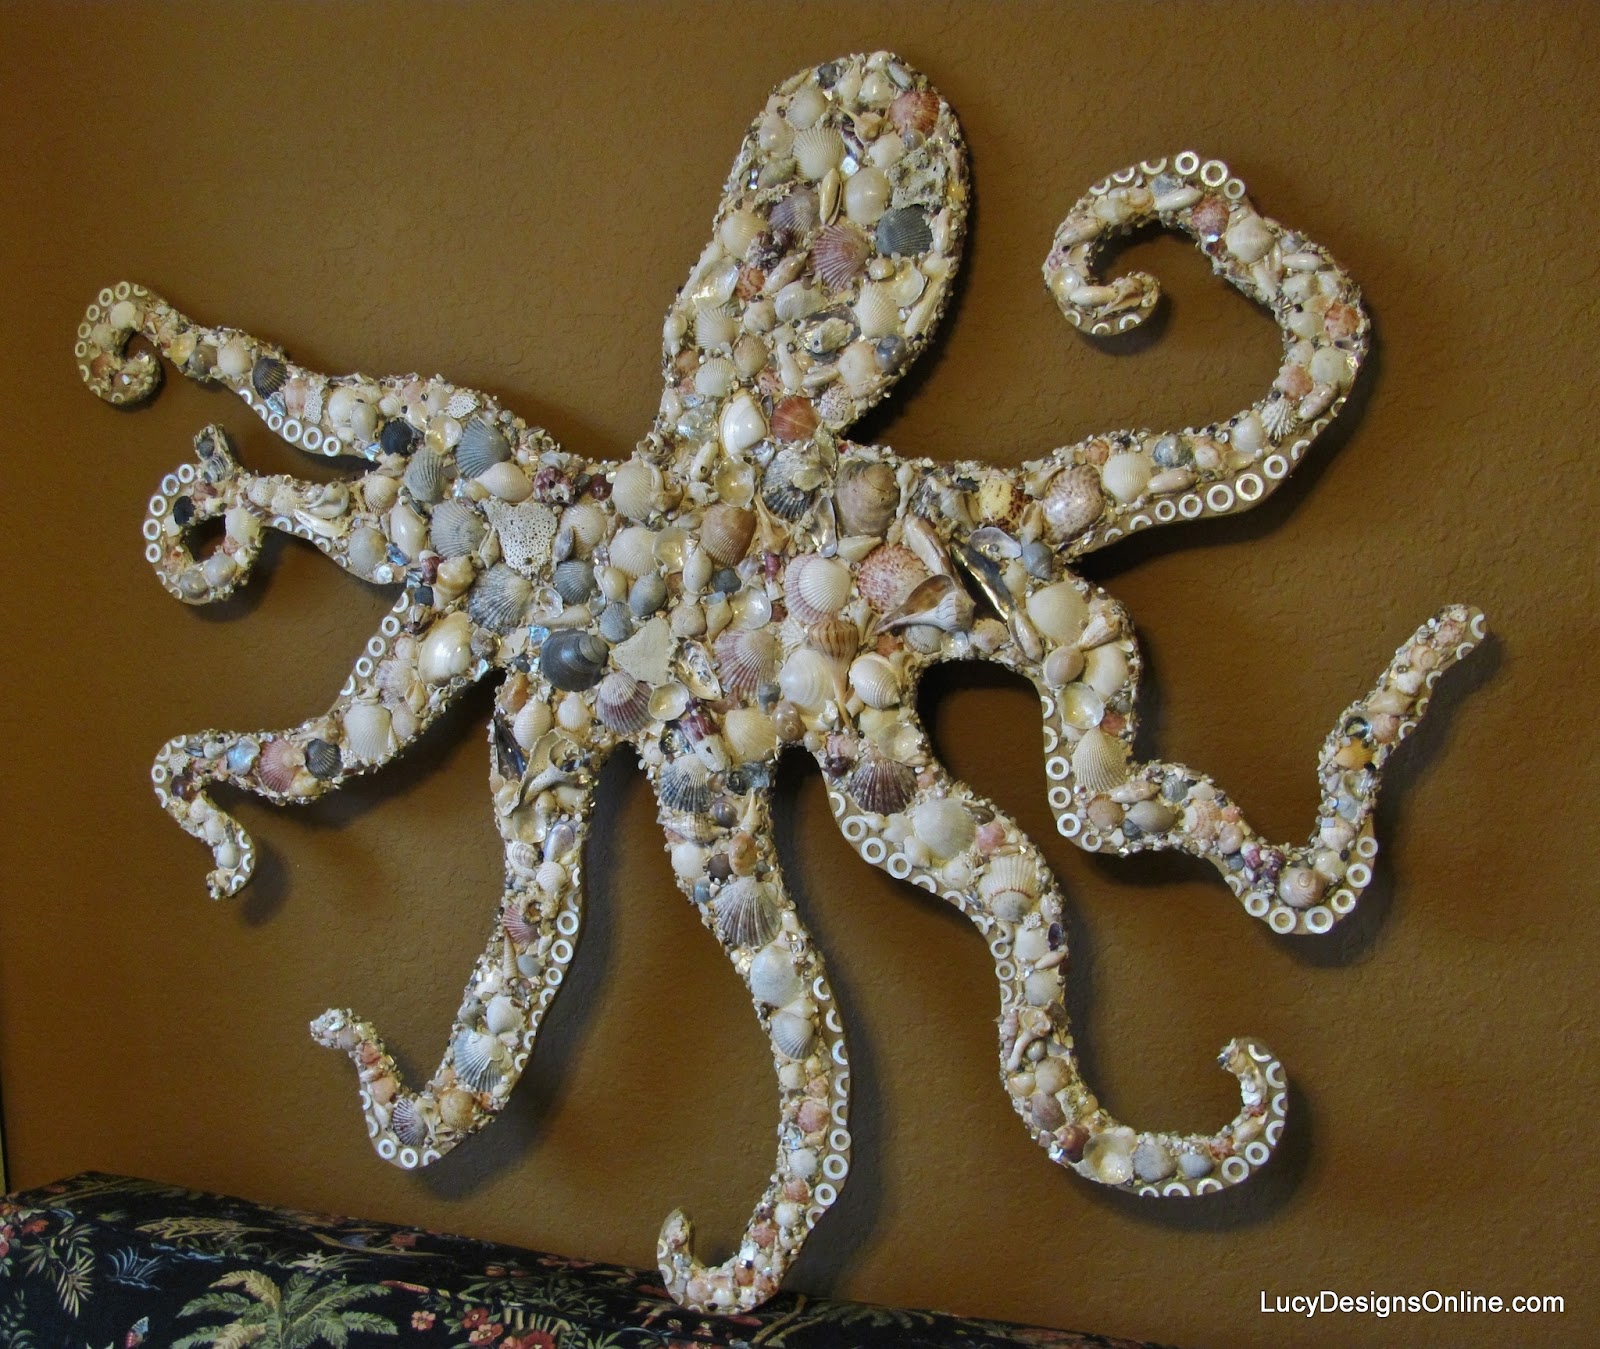 octopus seashell mosaic art